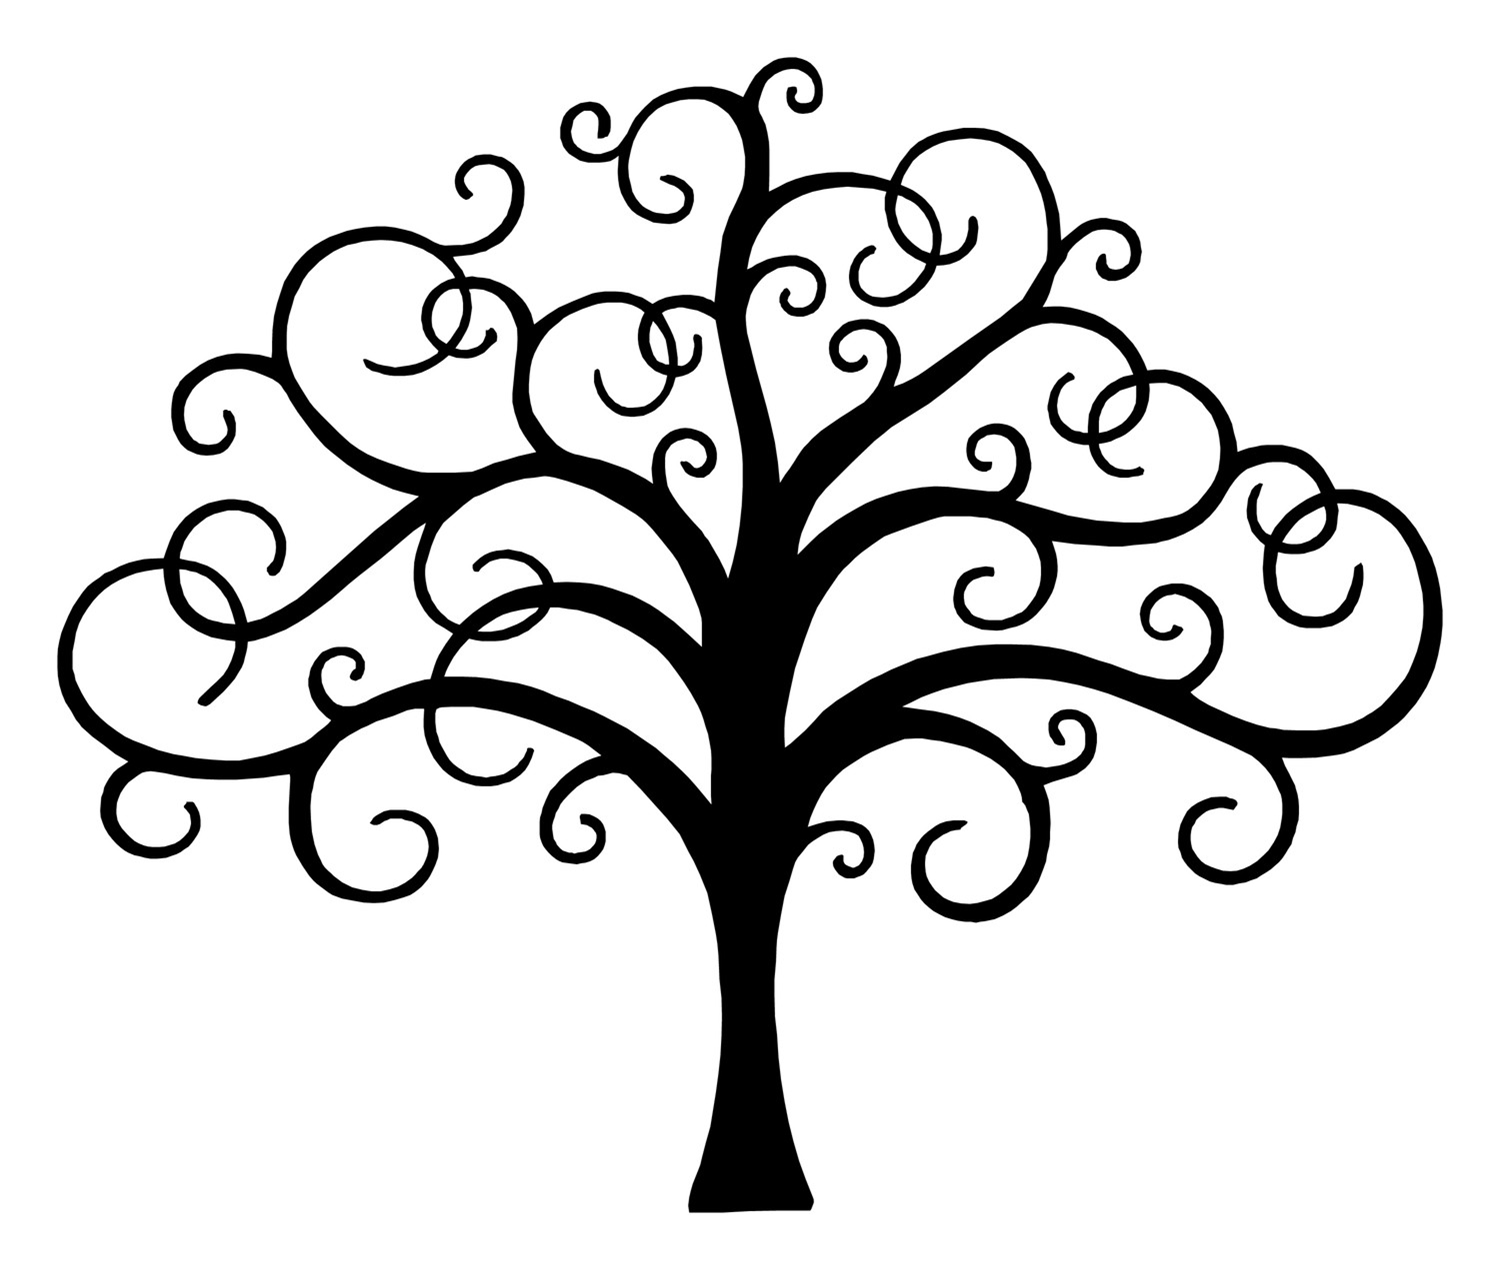 lds tree life lesson pictures relief society pinterest relief rh pinterest com tree of life silhouette clip art tree of life clip art free